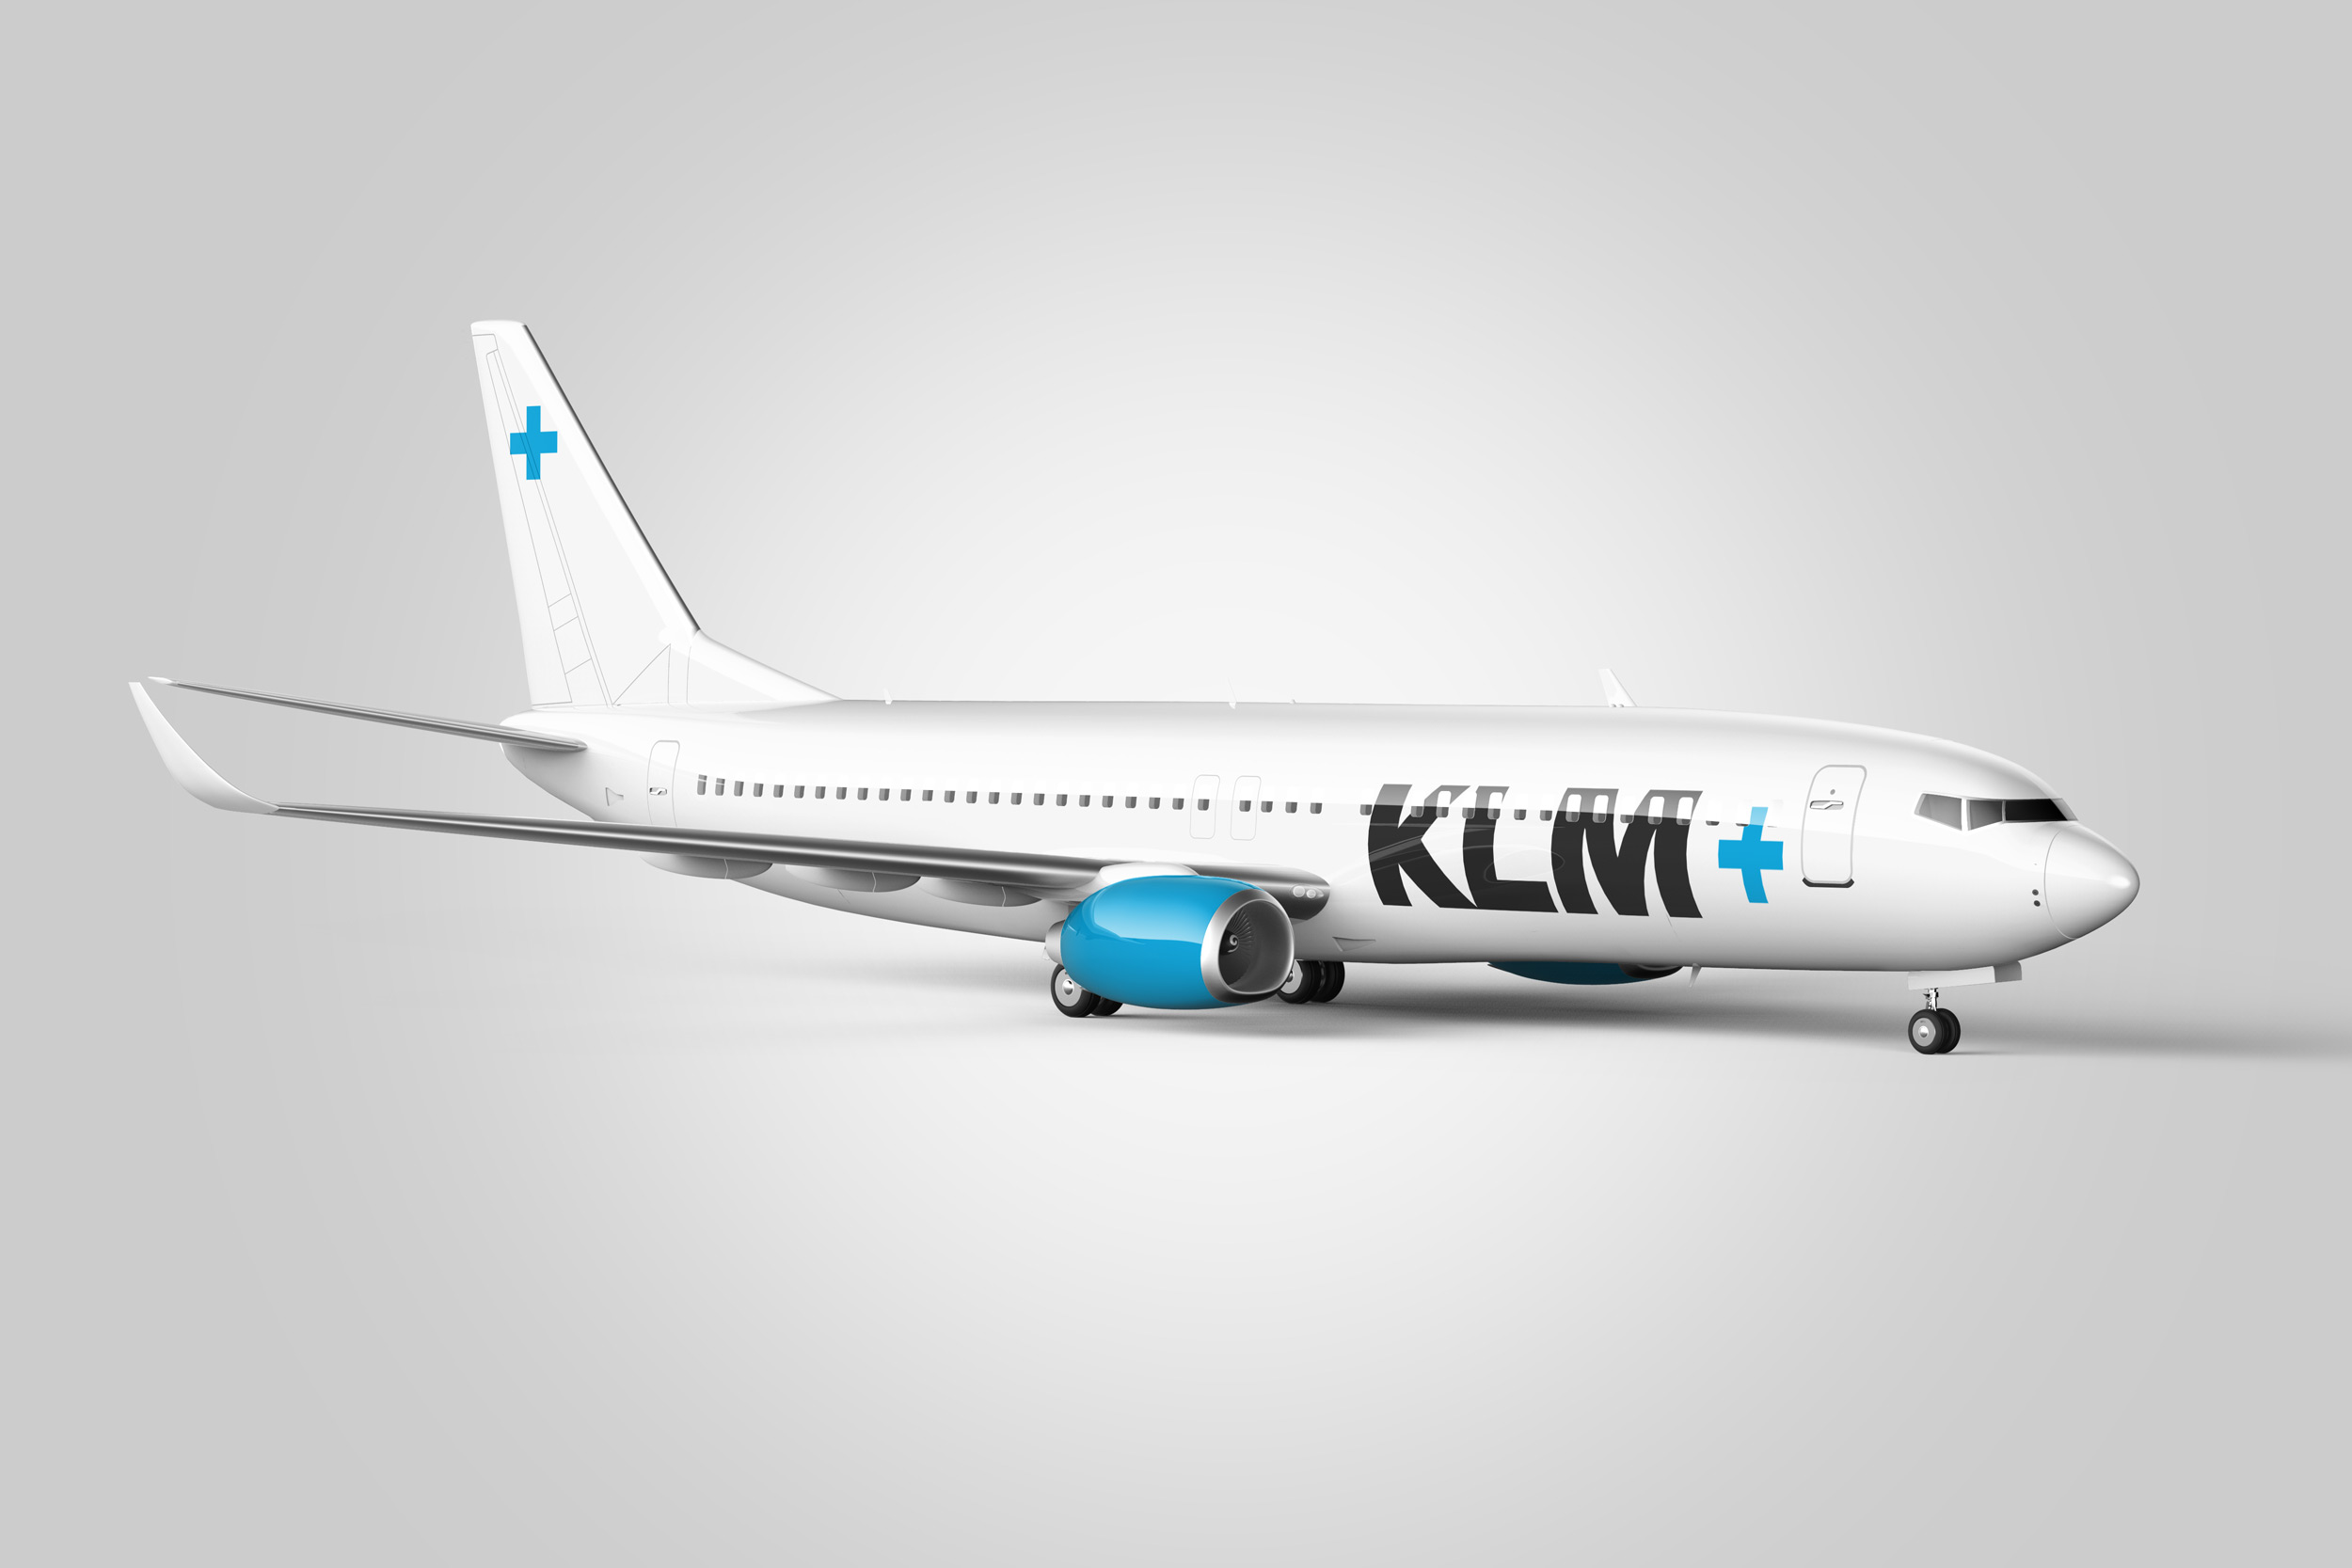 airliner737_1